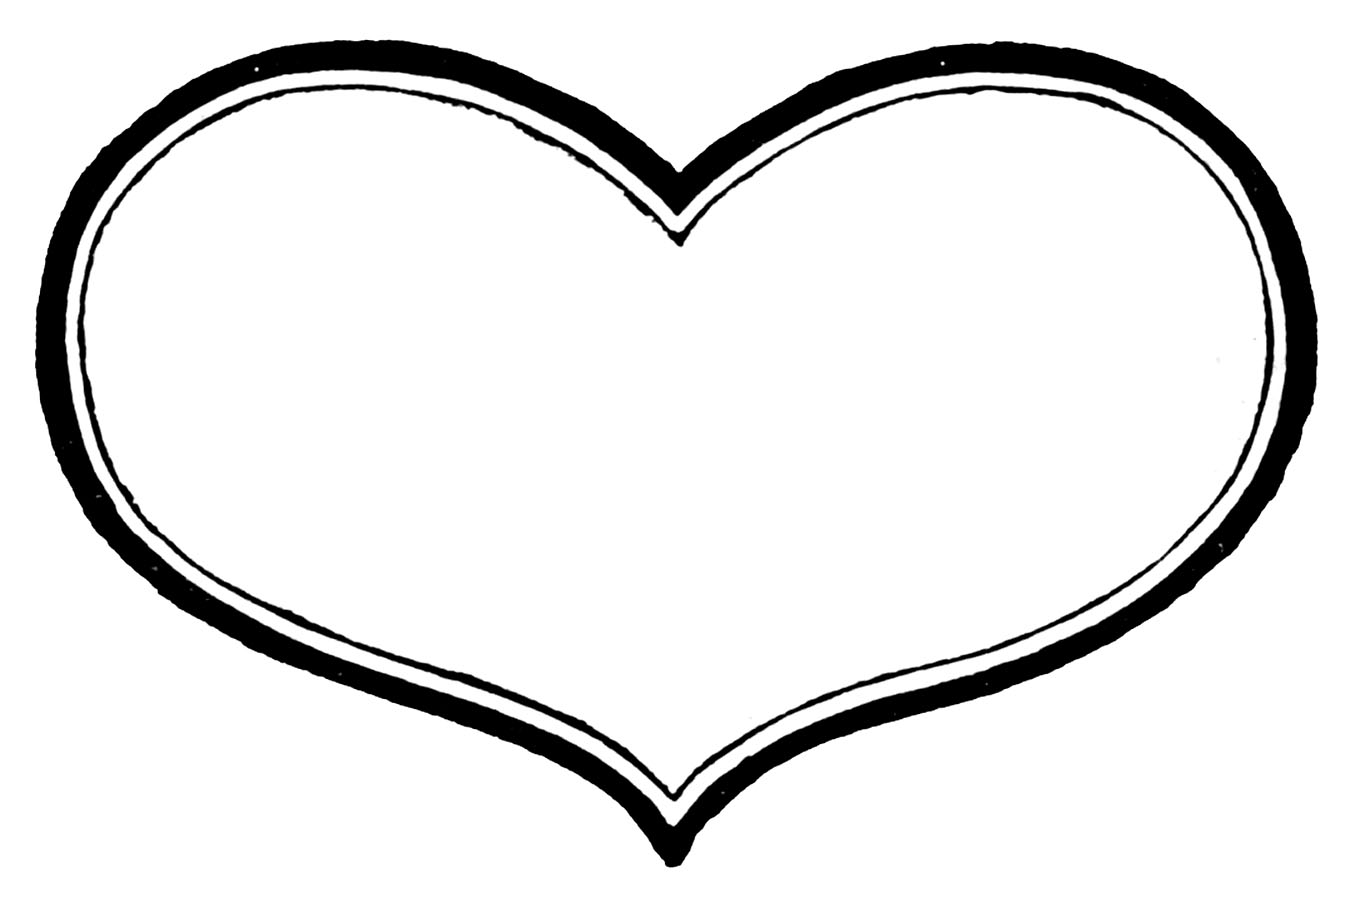 Two Hearts Clipart Wedding. - ClipArt Best - ClipArt Best